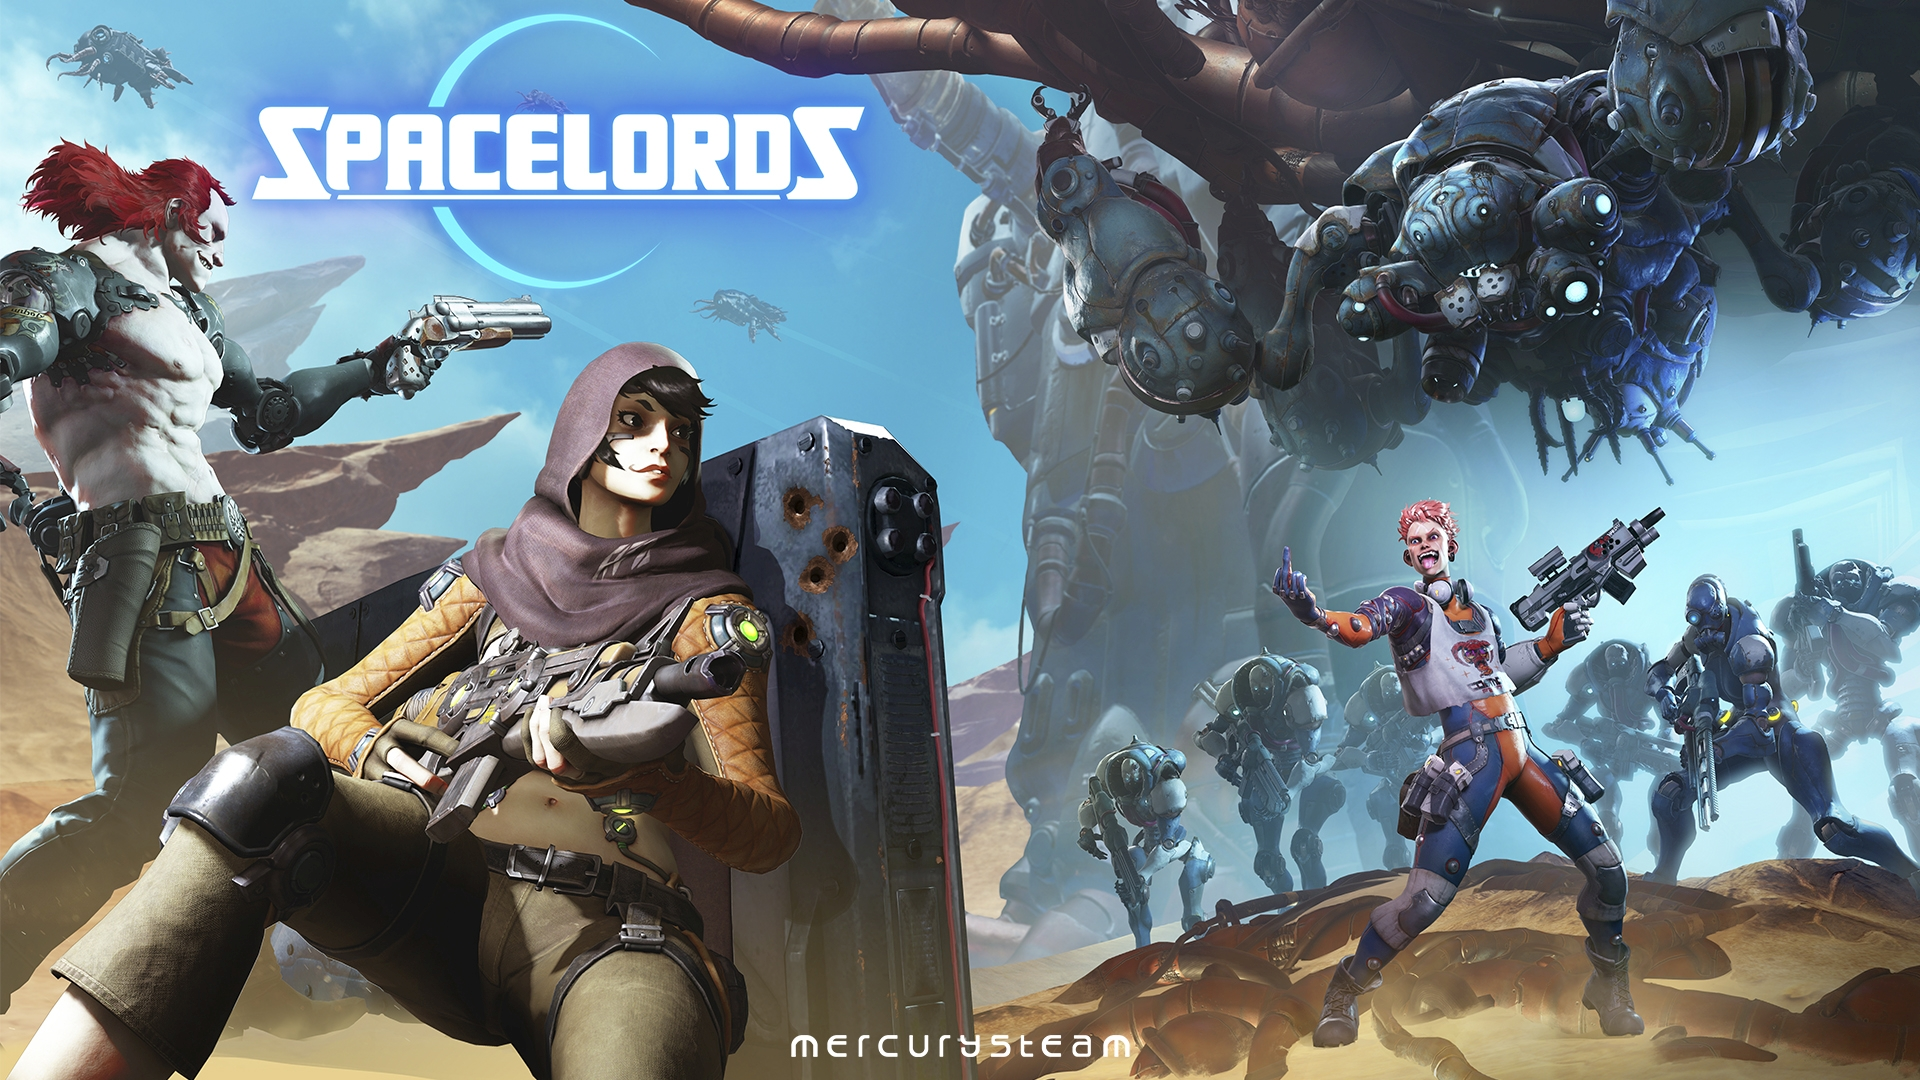 Spacelords shoots its way to release today